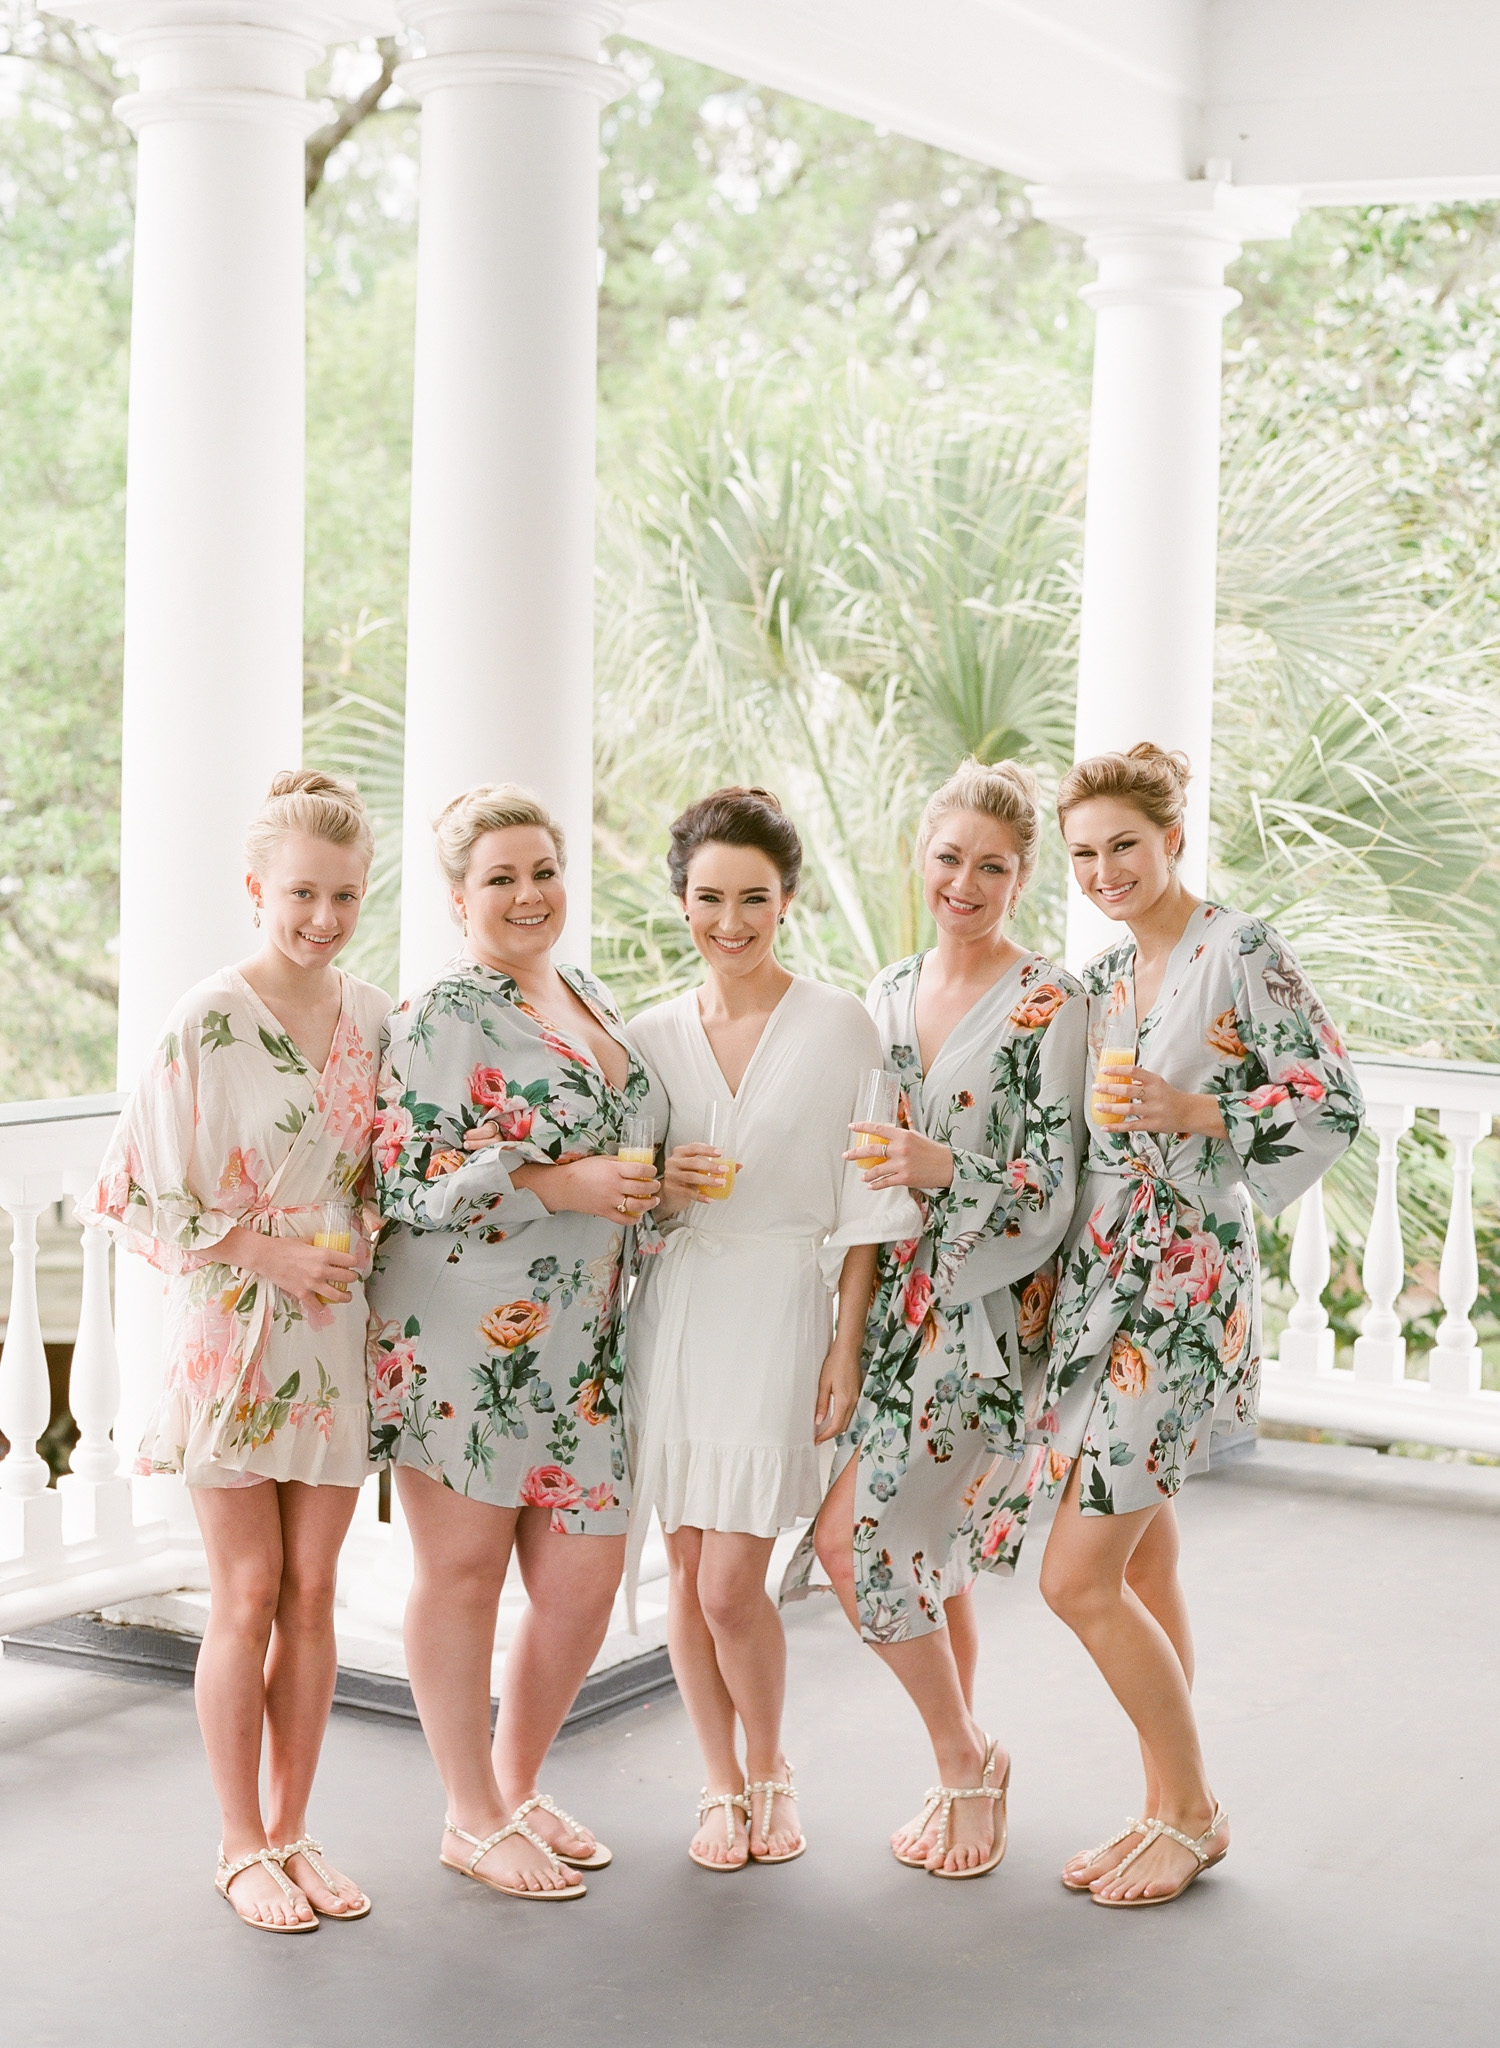 Charleston-Lowndes-Grove-Wedding-PPHG-7.jpg